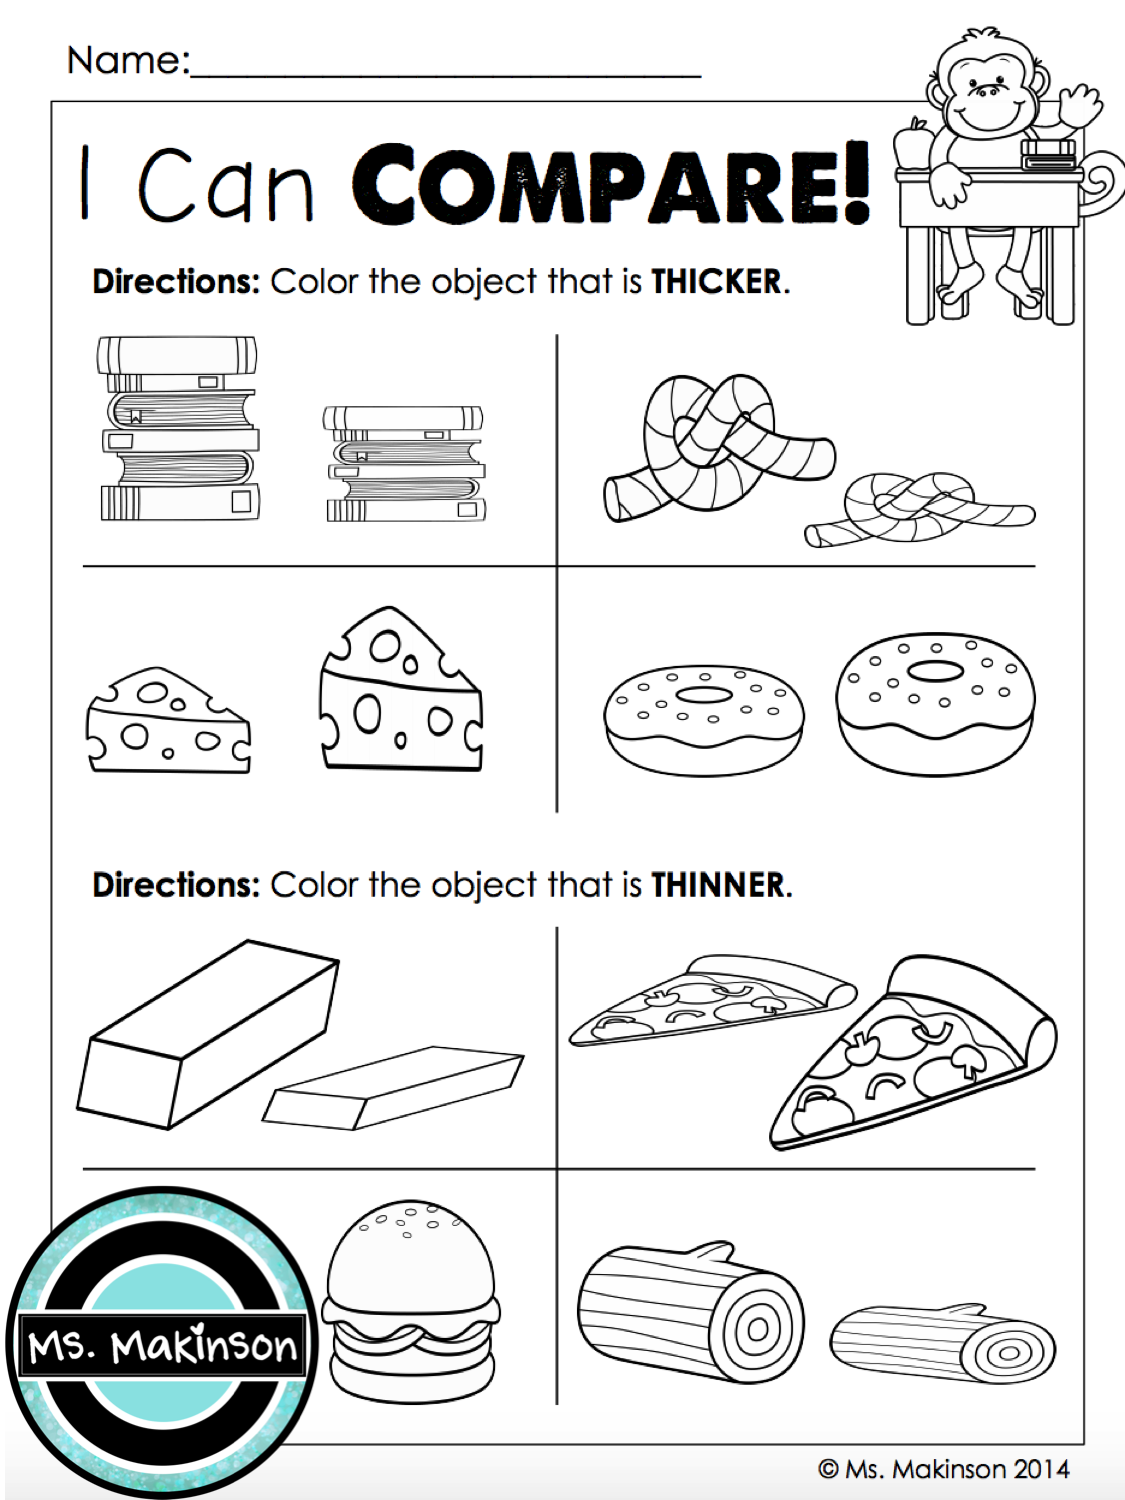 Measurement Comparing Thicker And Thinner First Grade Printables By Ms Makinson First Grade Math Math Measurement [ 1500 x 1125 Pixel ]